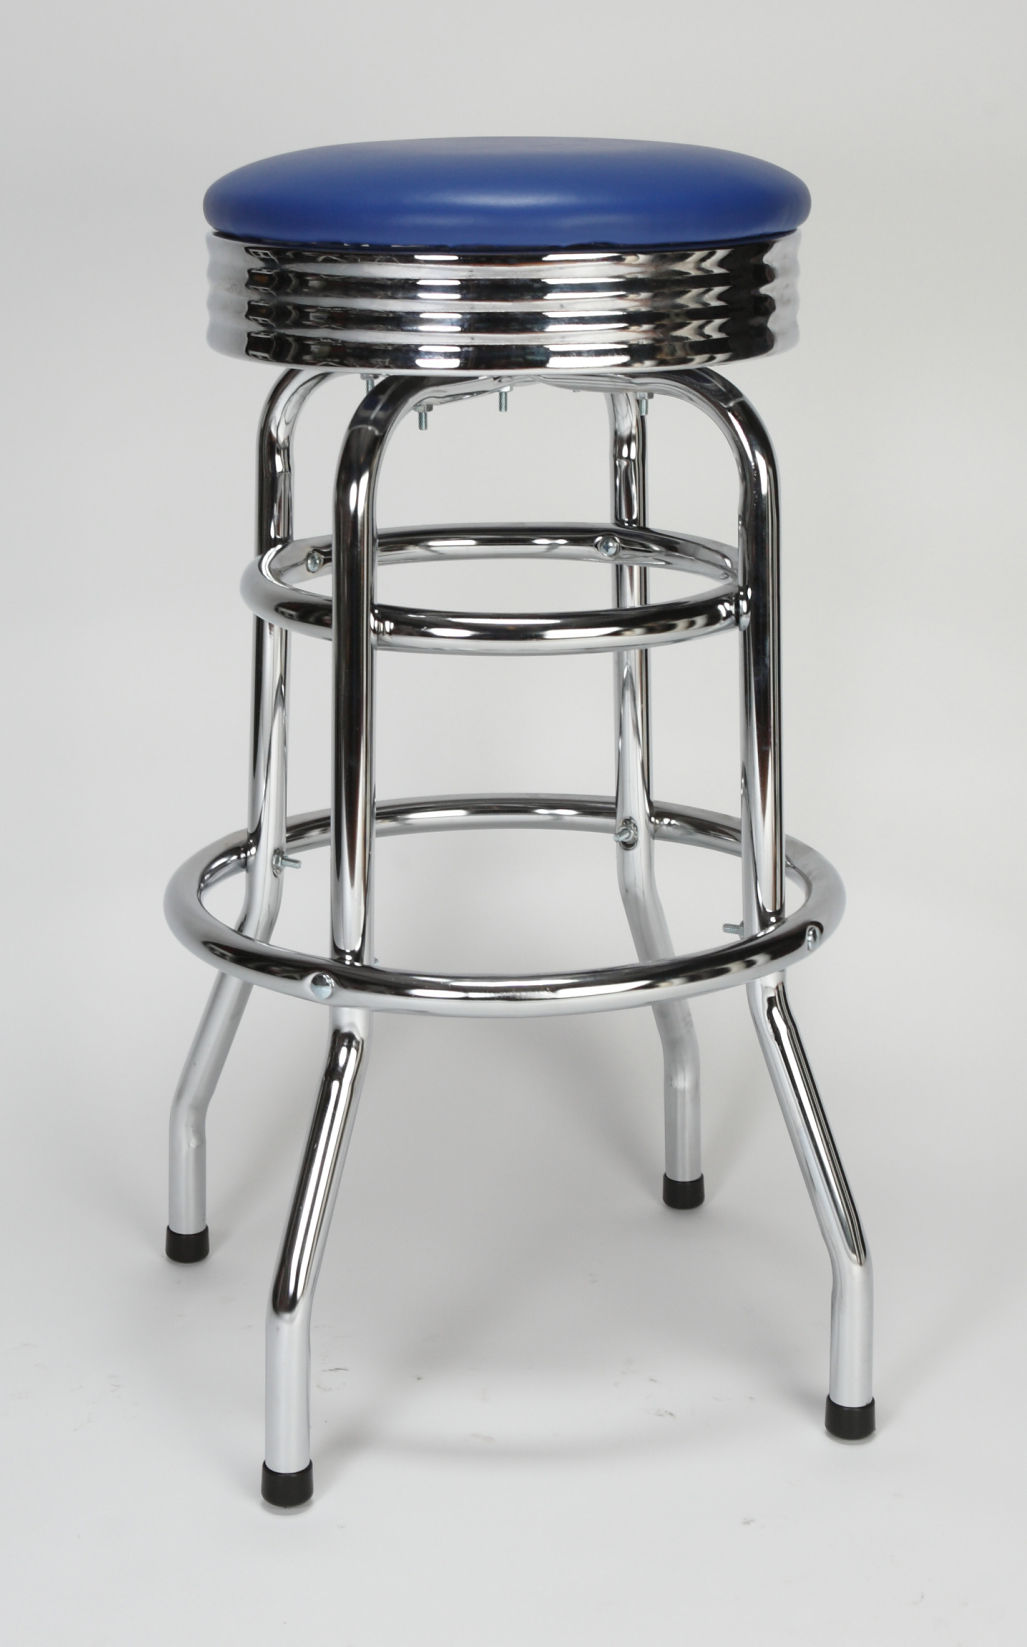 Chrome Circle Swivel Bar Stool Restaurant Furniture  : 8406 3 from www.restaurantfurniturewarehouse.com size 1027 x 1647 jpeg 675kB